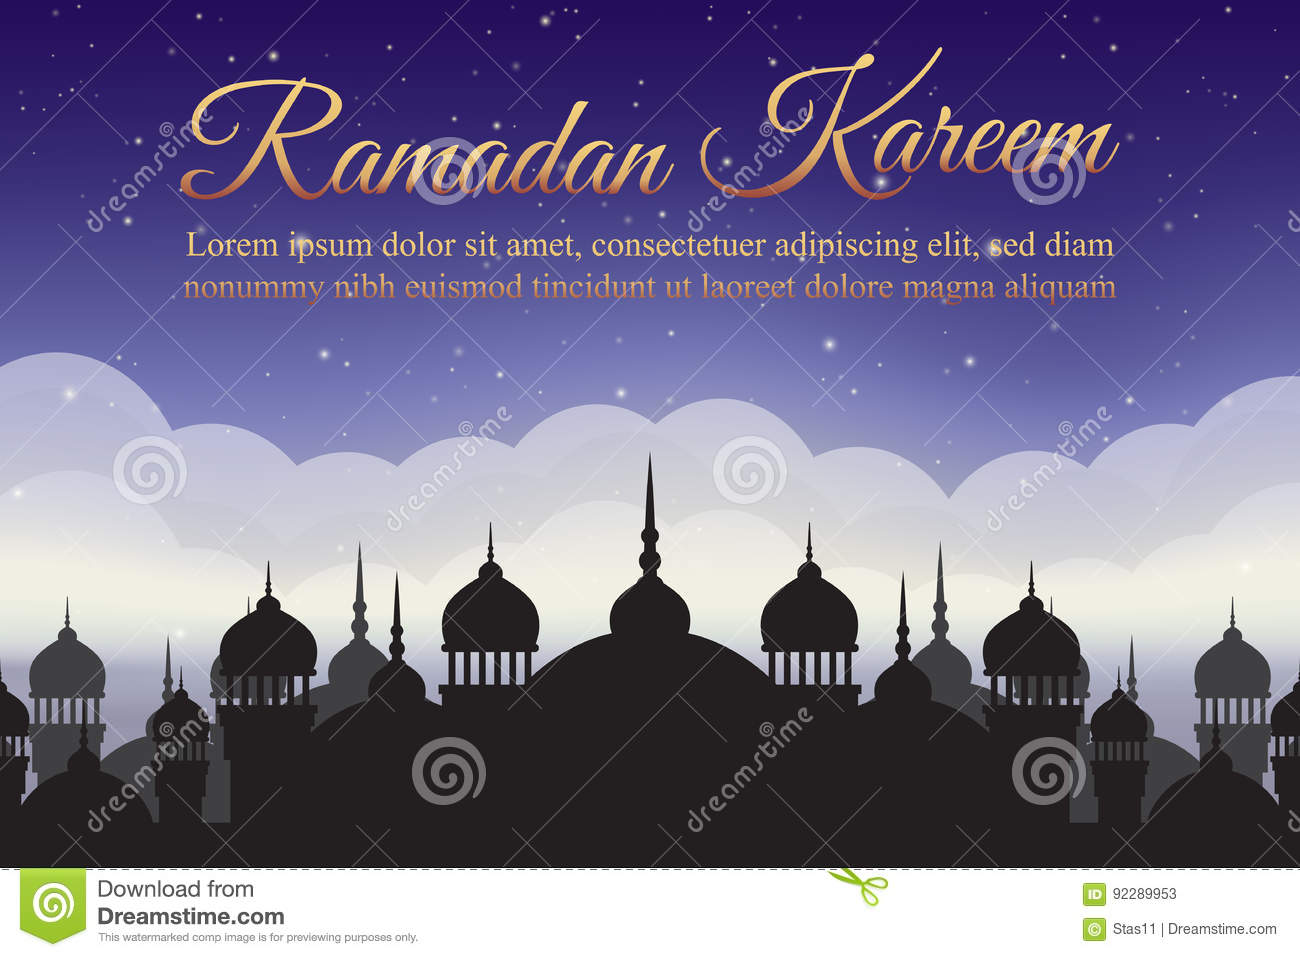 Mosque background for ramadan kareem stock photography image - Ramadan Kareem Night Sky With Mosque Silhouette And Clouds Arabic Background Stock Photos